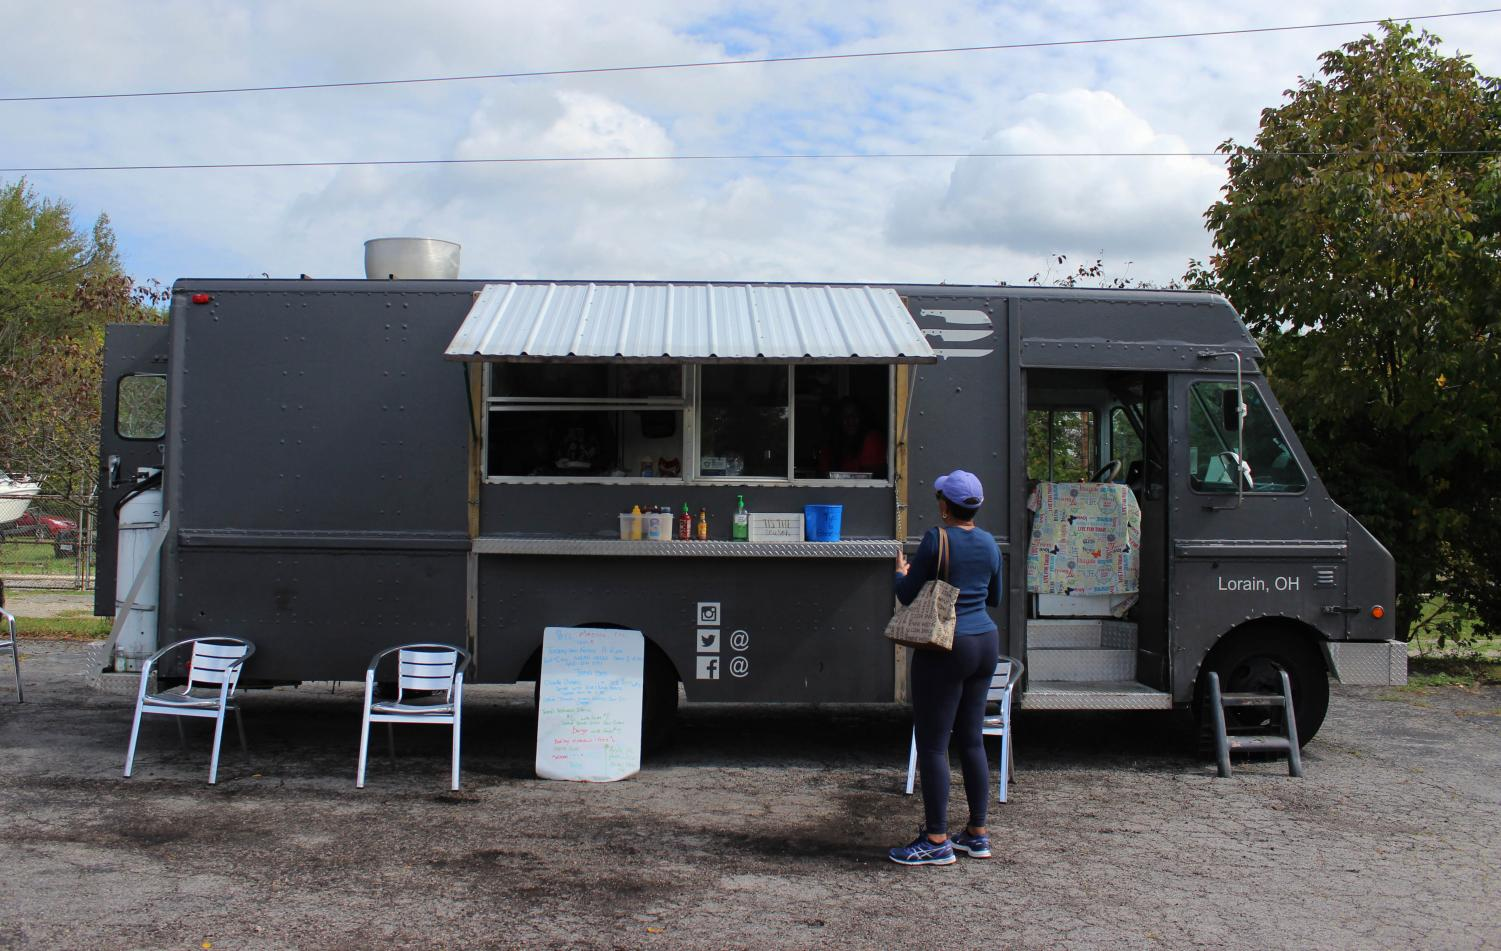 Steel Magnolia, a food truck and catering service serving Caribbean and Southern-style cuisine, is located at 408 E. Lorain Street.